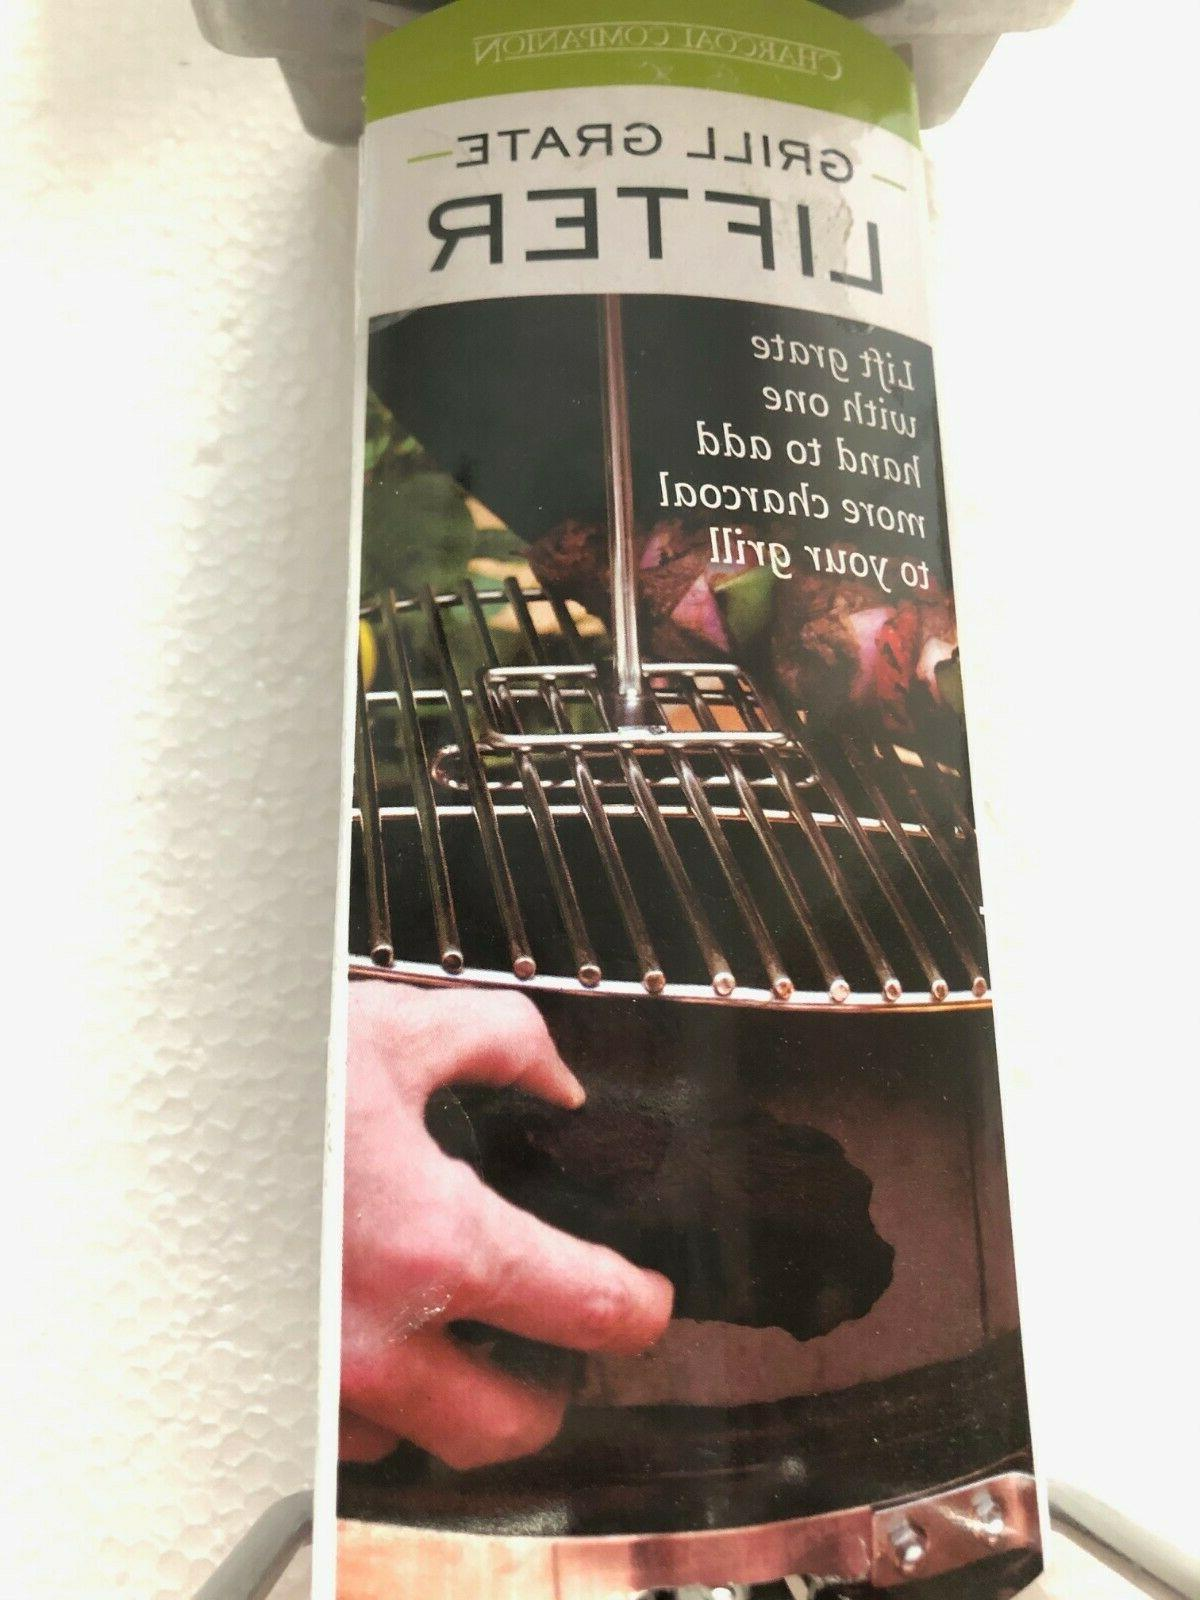 Charcoal Companion CC7353 Grill Grate Lifter, Steel